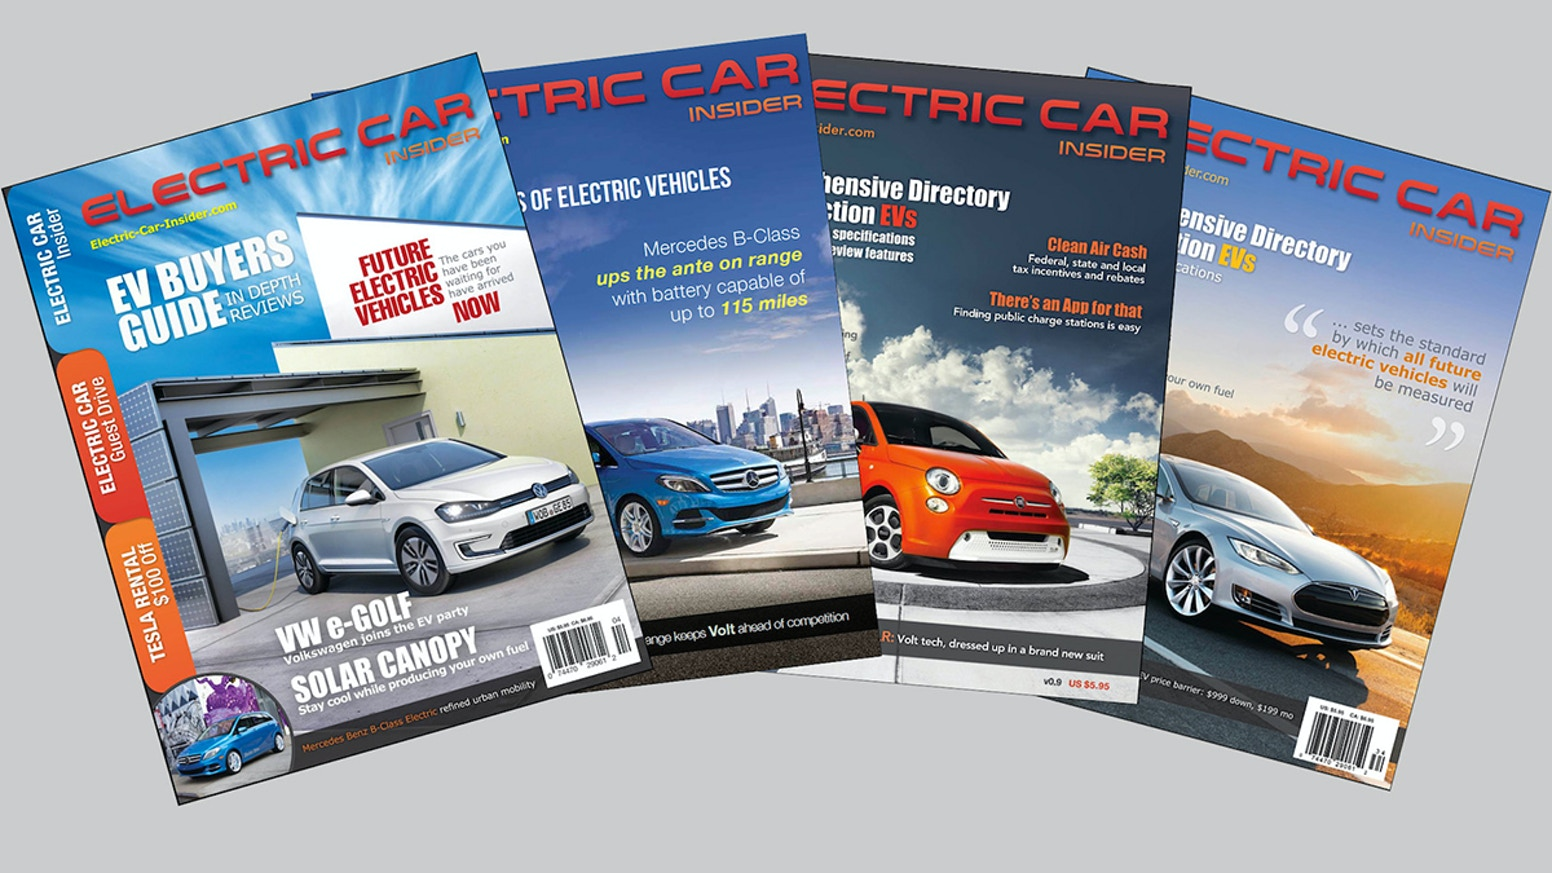 Raise awareness of zero emission vehicles & educate people about the benefits of driving electric by funding our EV Buyers Guide. See our new App Kickstarter